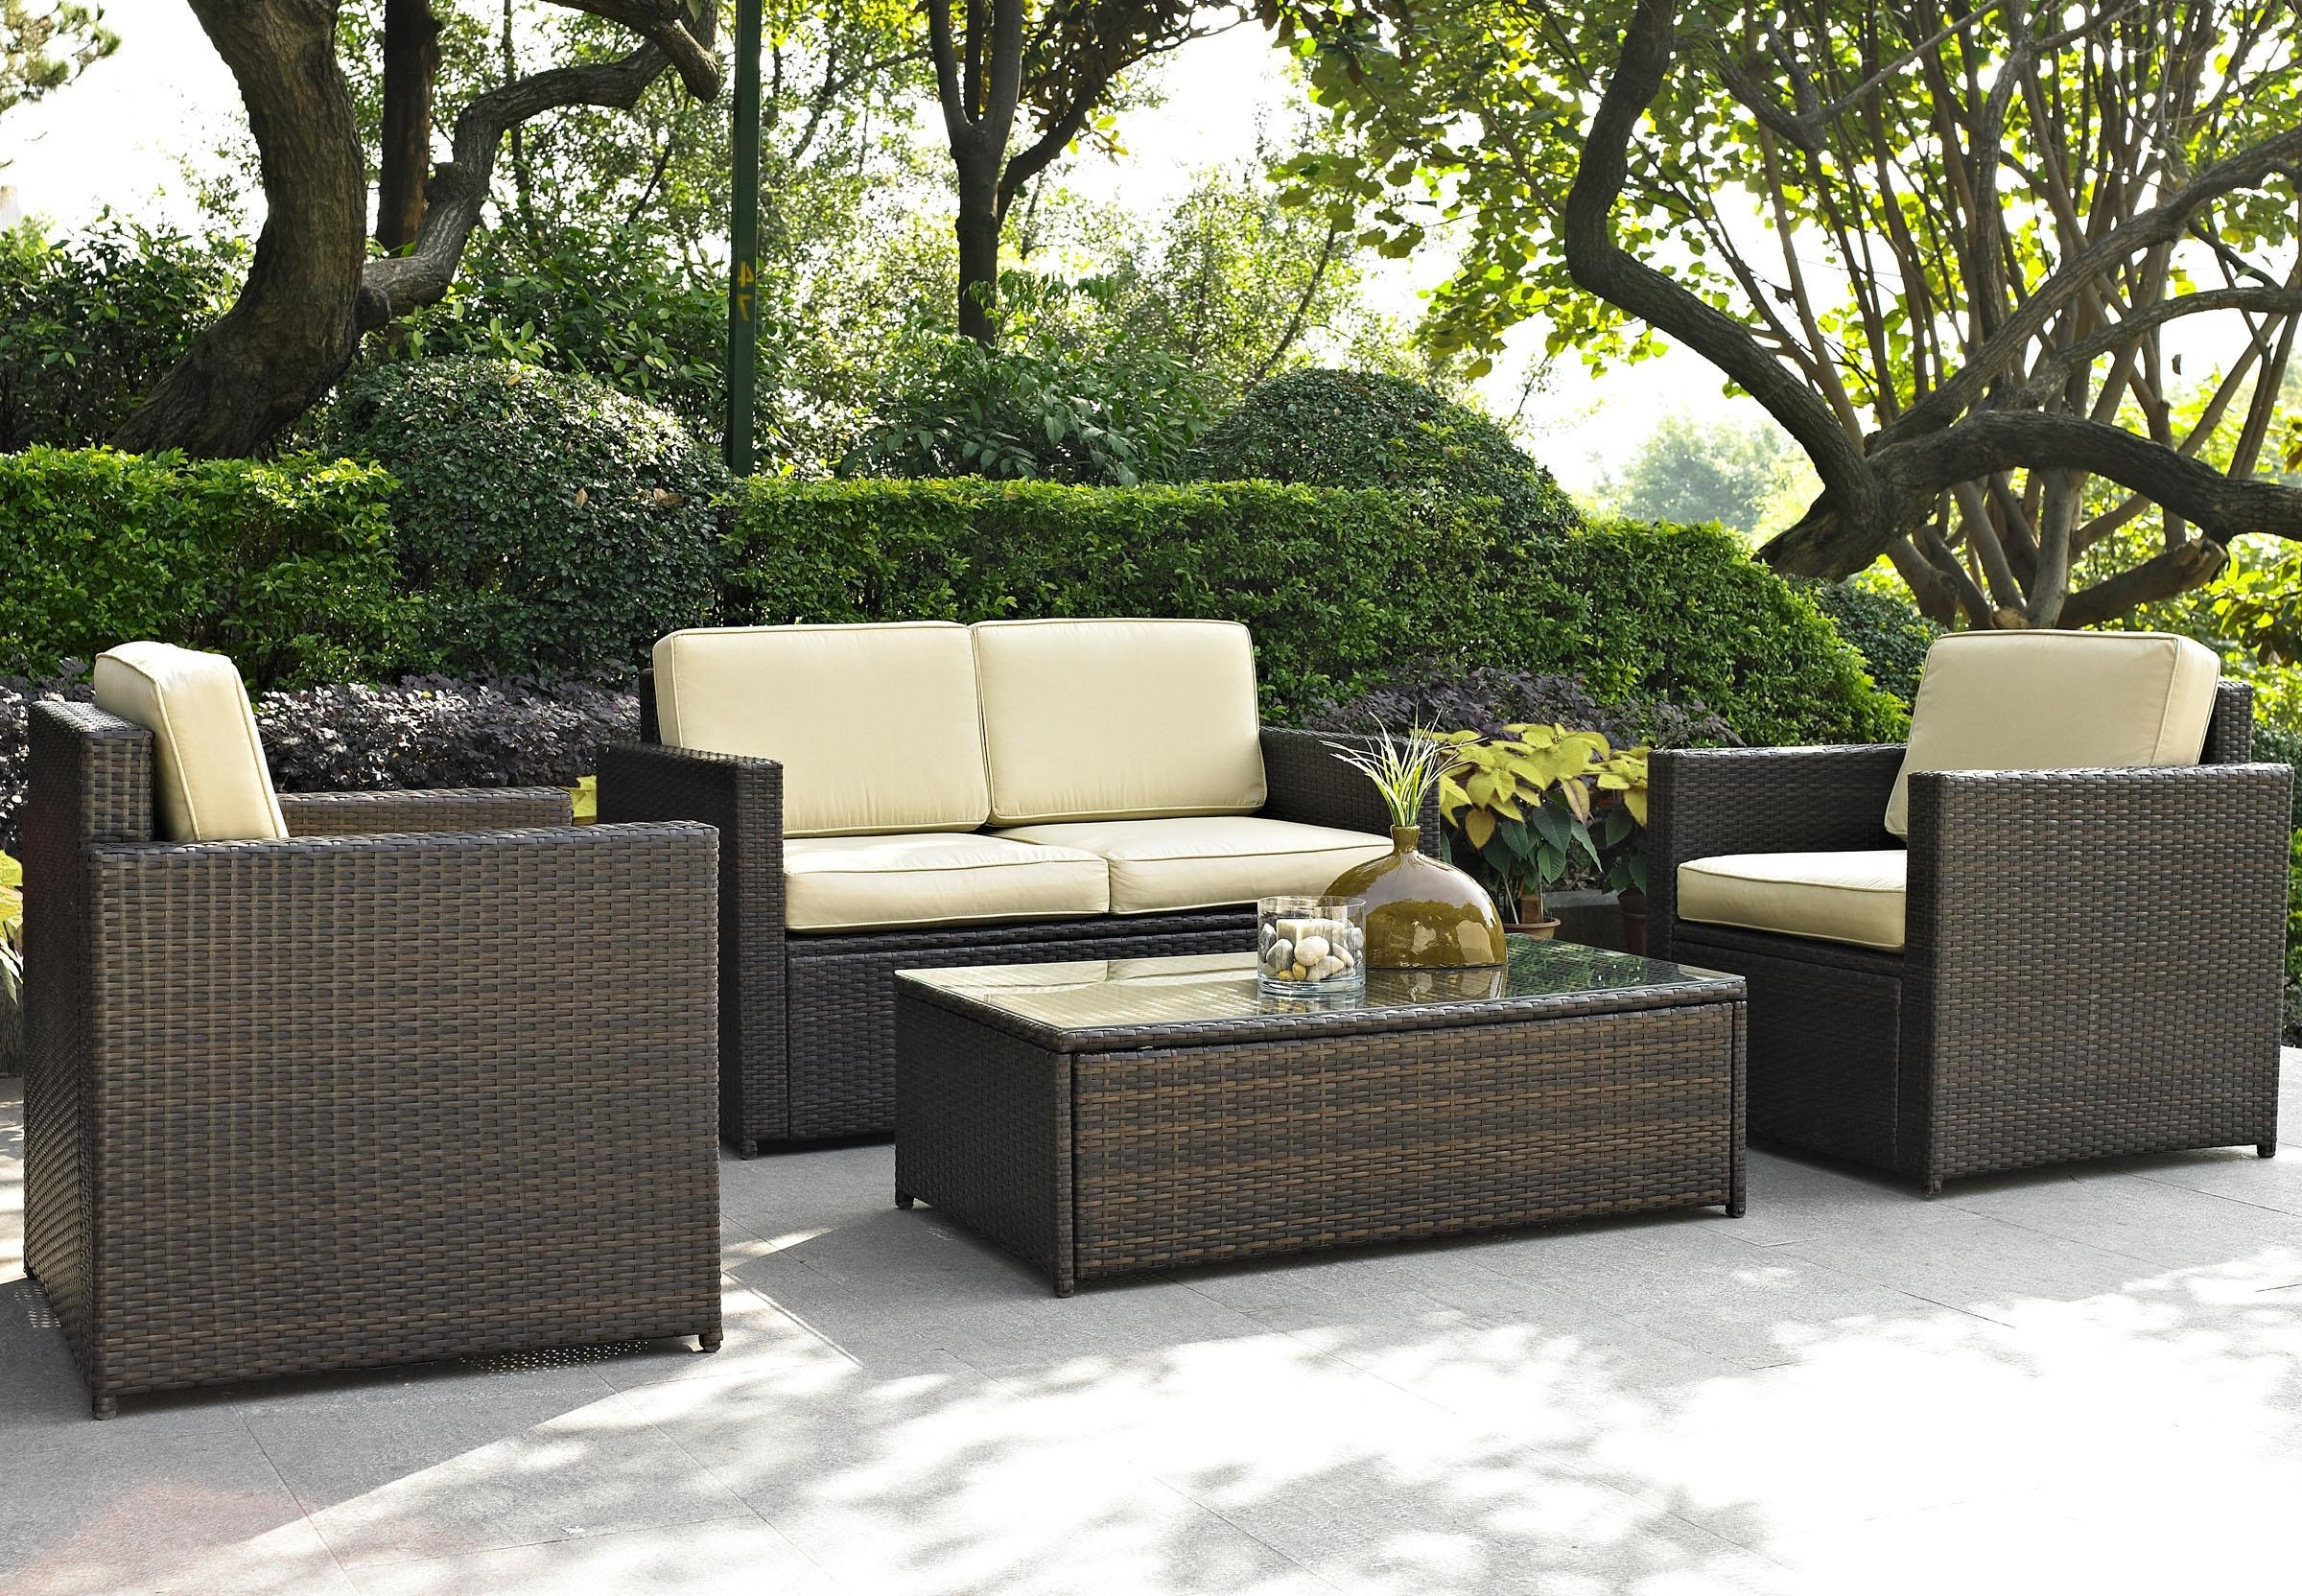 Furniture: Lovely Brown Wicker Chair Outdoor Furniture Design For Best And Newest Resin Wicker Patio Conversation Sets (View 7 of 20)